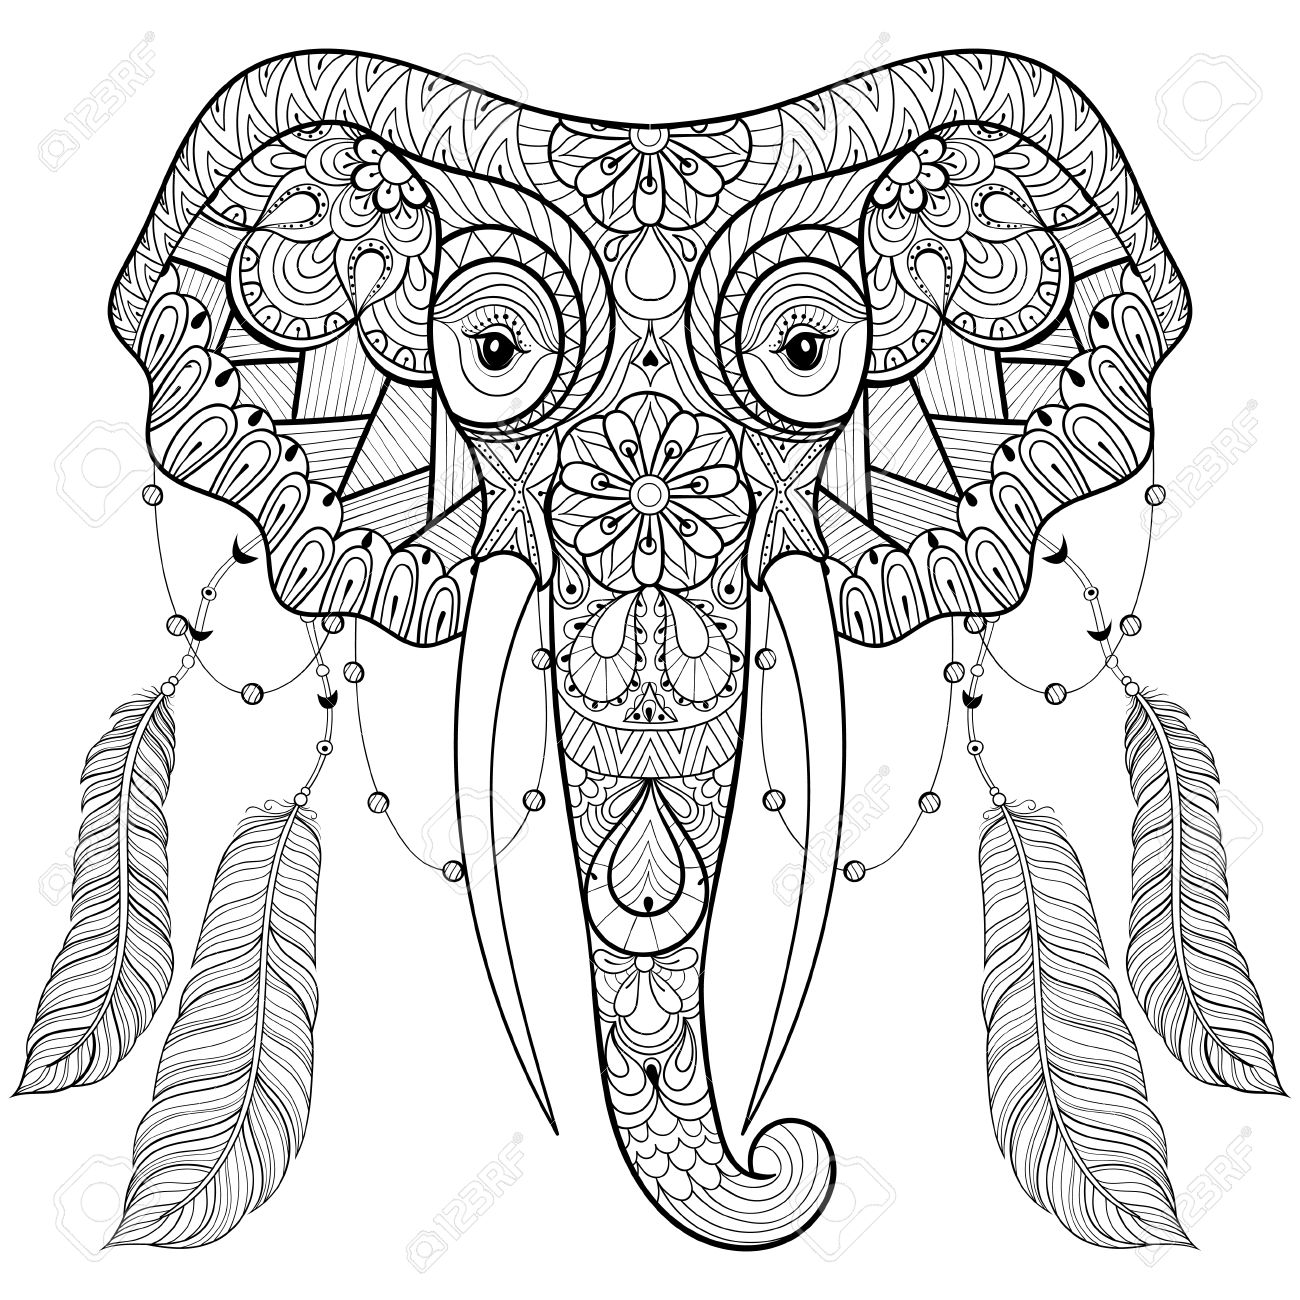 Famoso Zentangle Elefante Indiano Con Piume Di Uccelli In Boho Chic  SO07